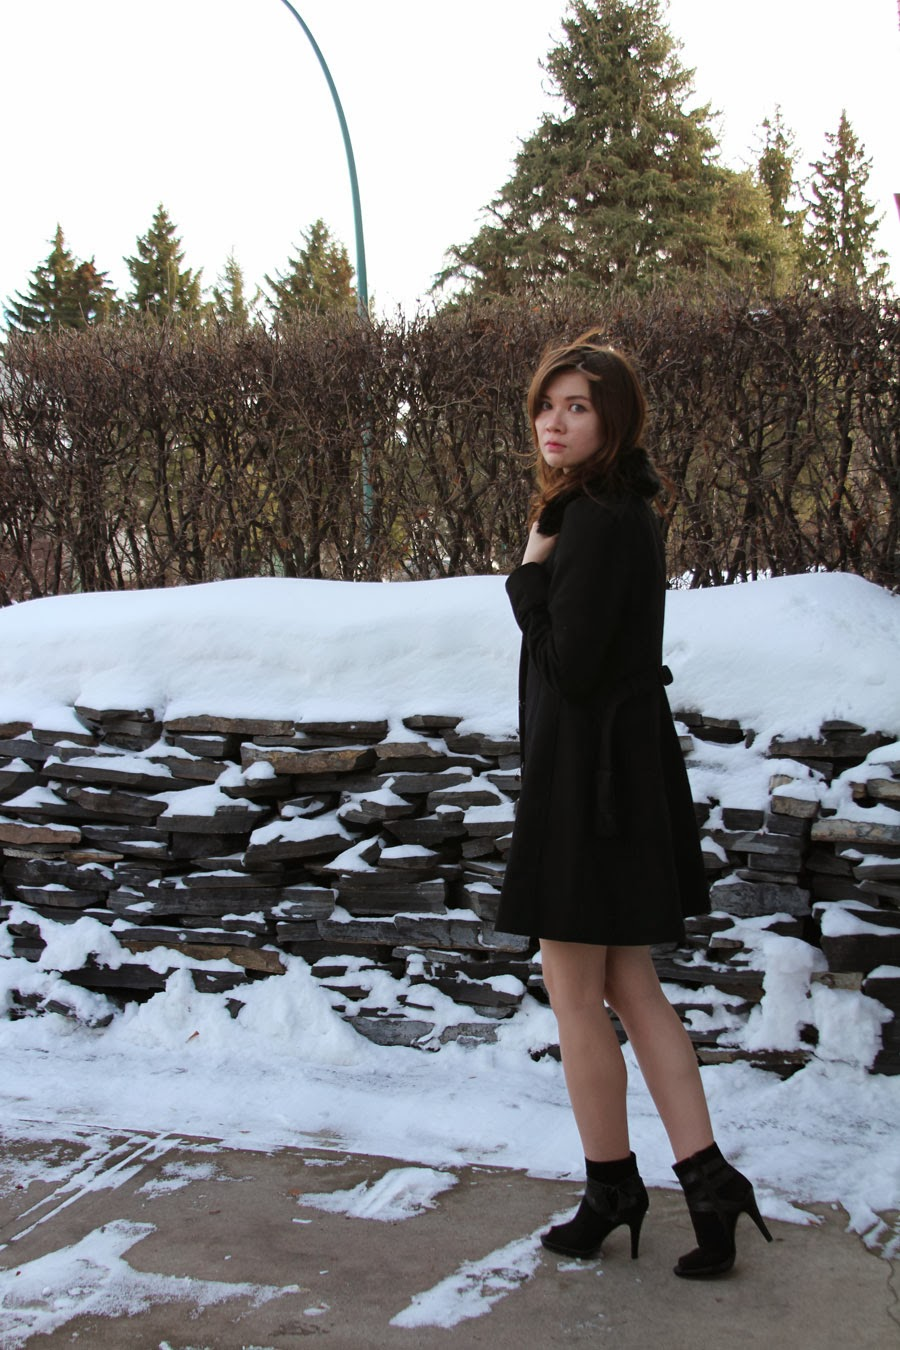 All Saints Dress, Dee Dee, personal style, swarovski cuff, banana republic, winter fashion